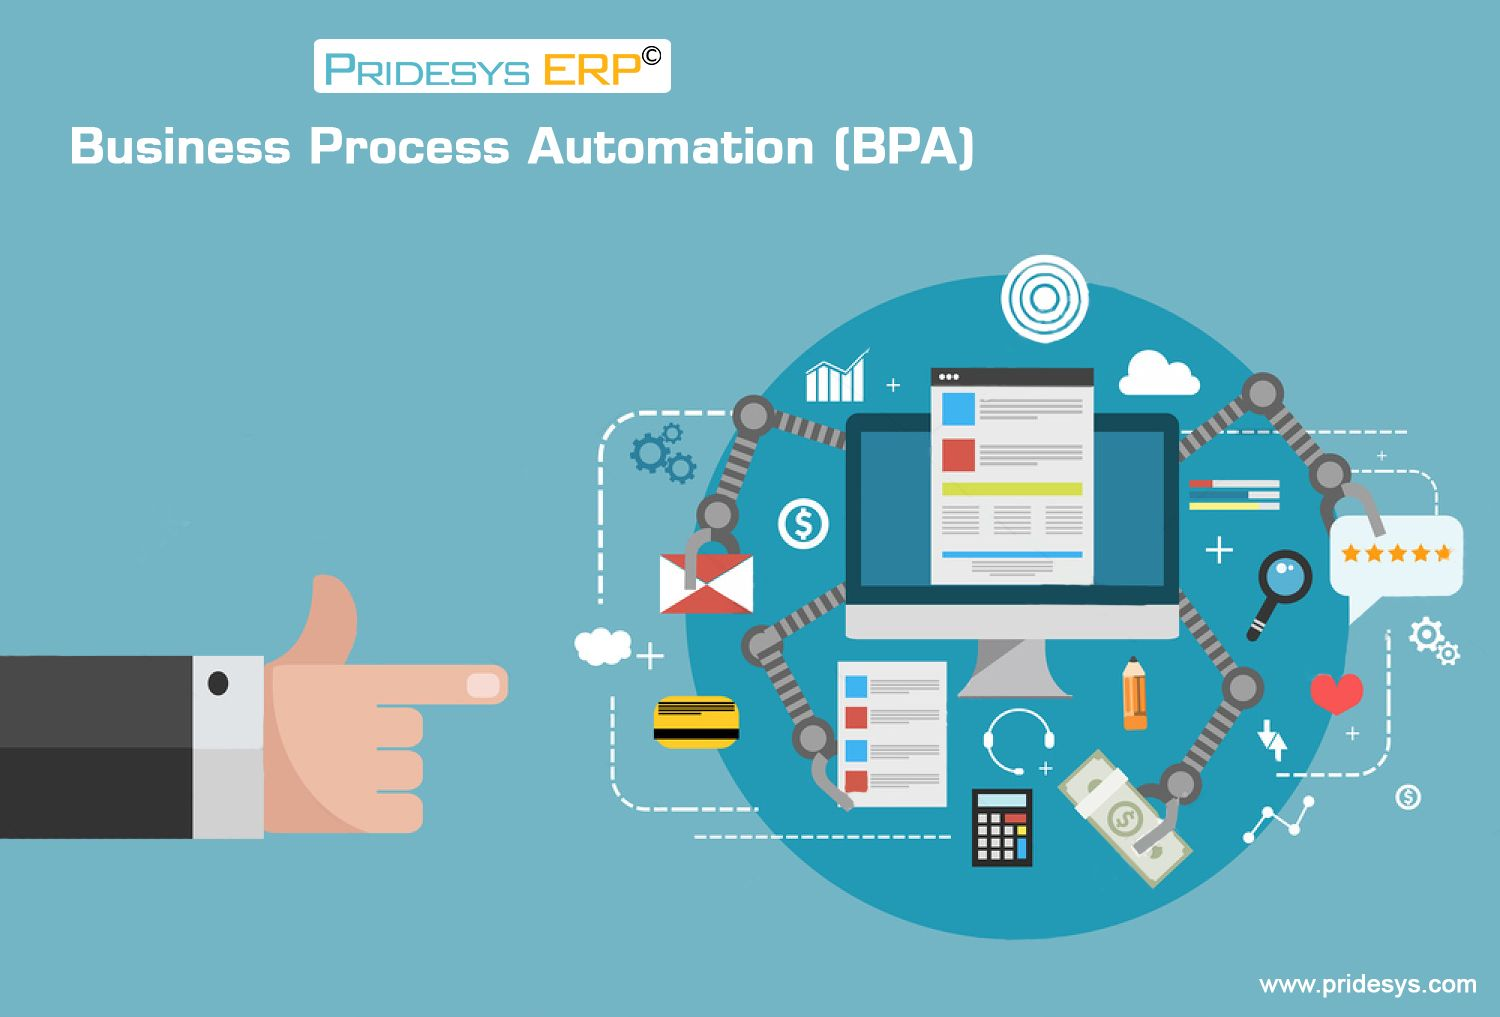 Business Process Automation Is A Strategy For Business To Manage Information Data And Processes To Reduce Cost Resources Business Process Erp System Business